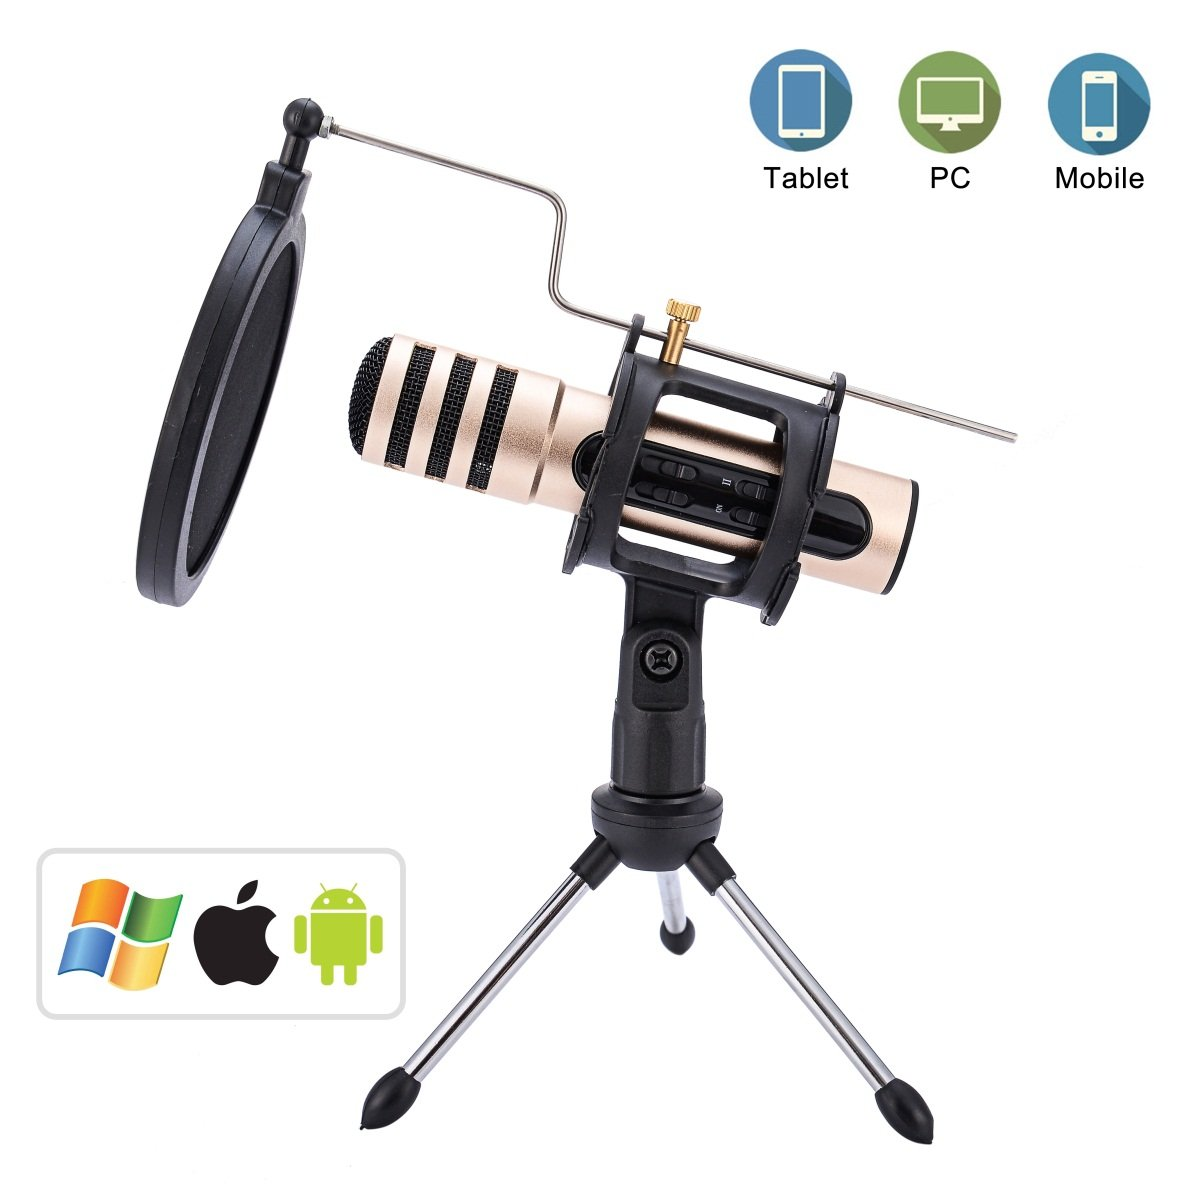 RongSa Professional Condenser Microphone PC Computer Kit With Stand Built-in Sound Card Echo Recording Karaoke Singing for Studio Recording Podcasting Broadcasting,Online Chatting